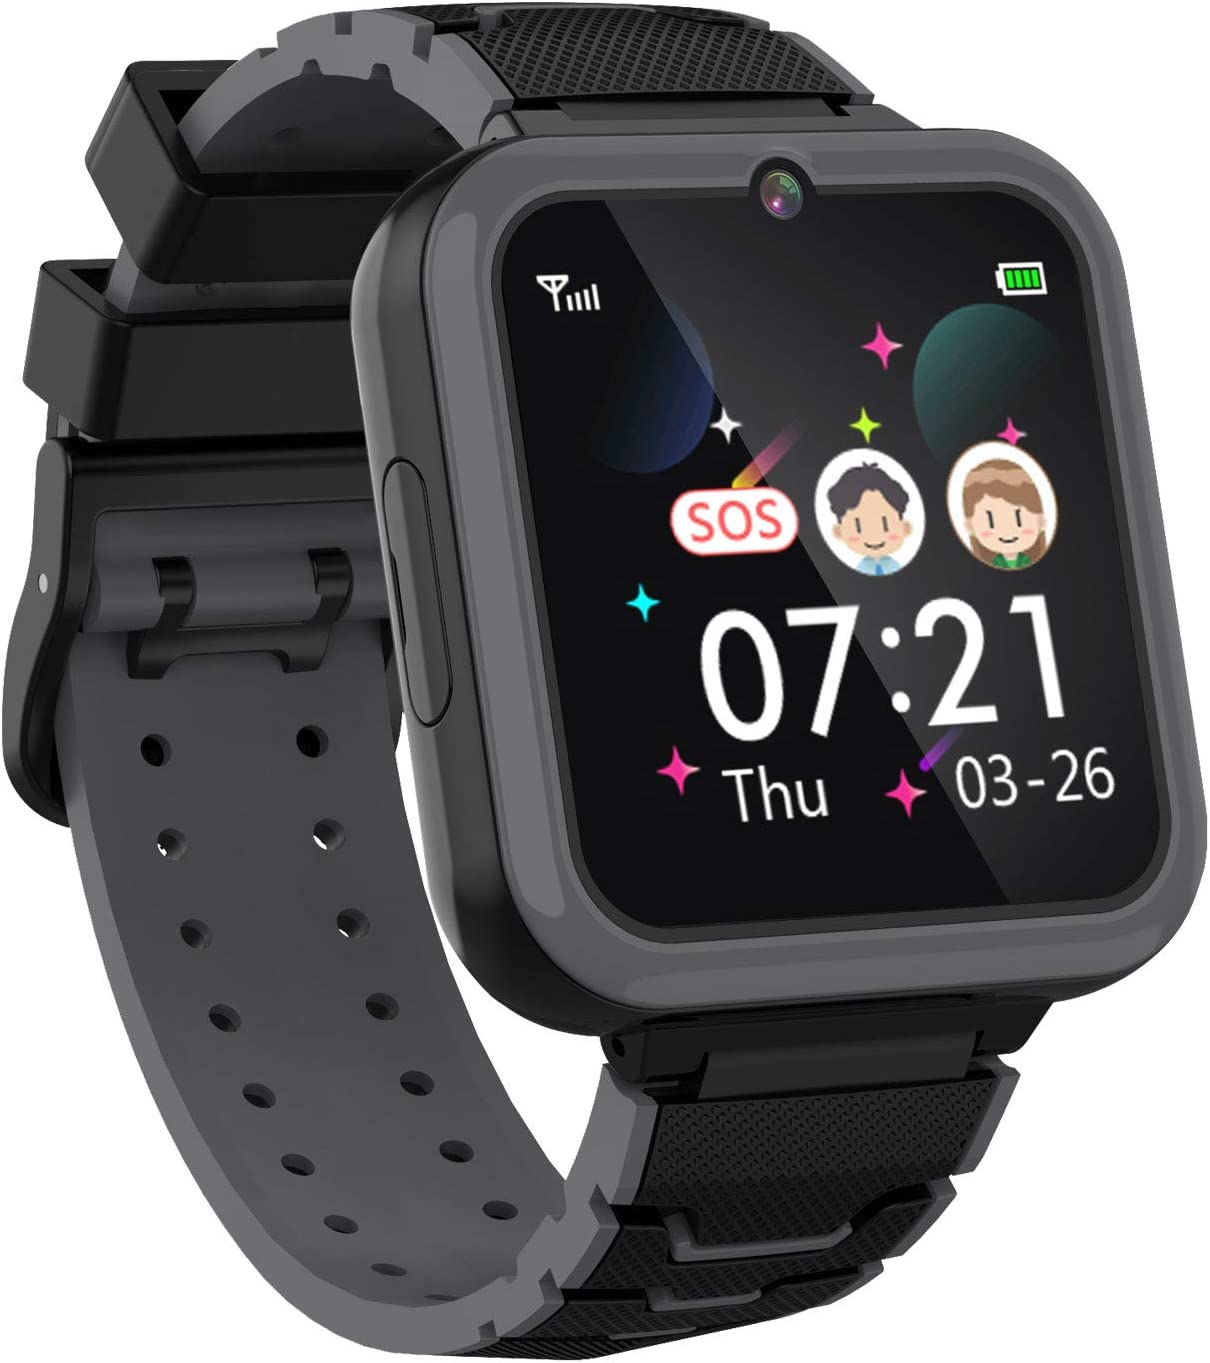 Montre Smartwatch en promotion